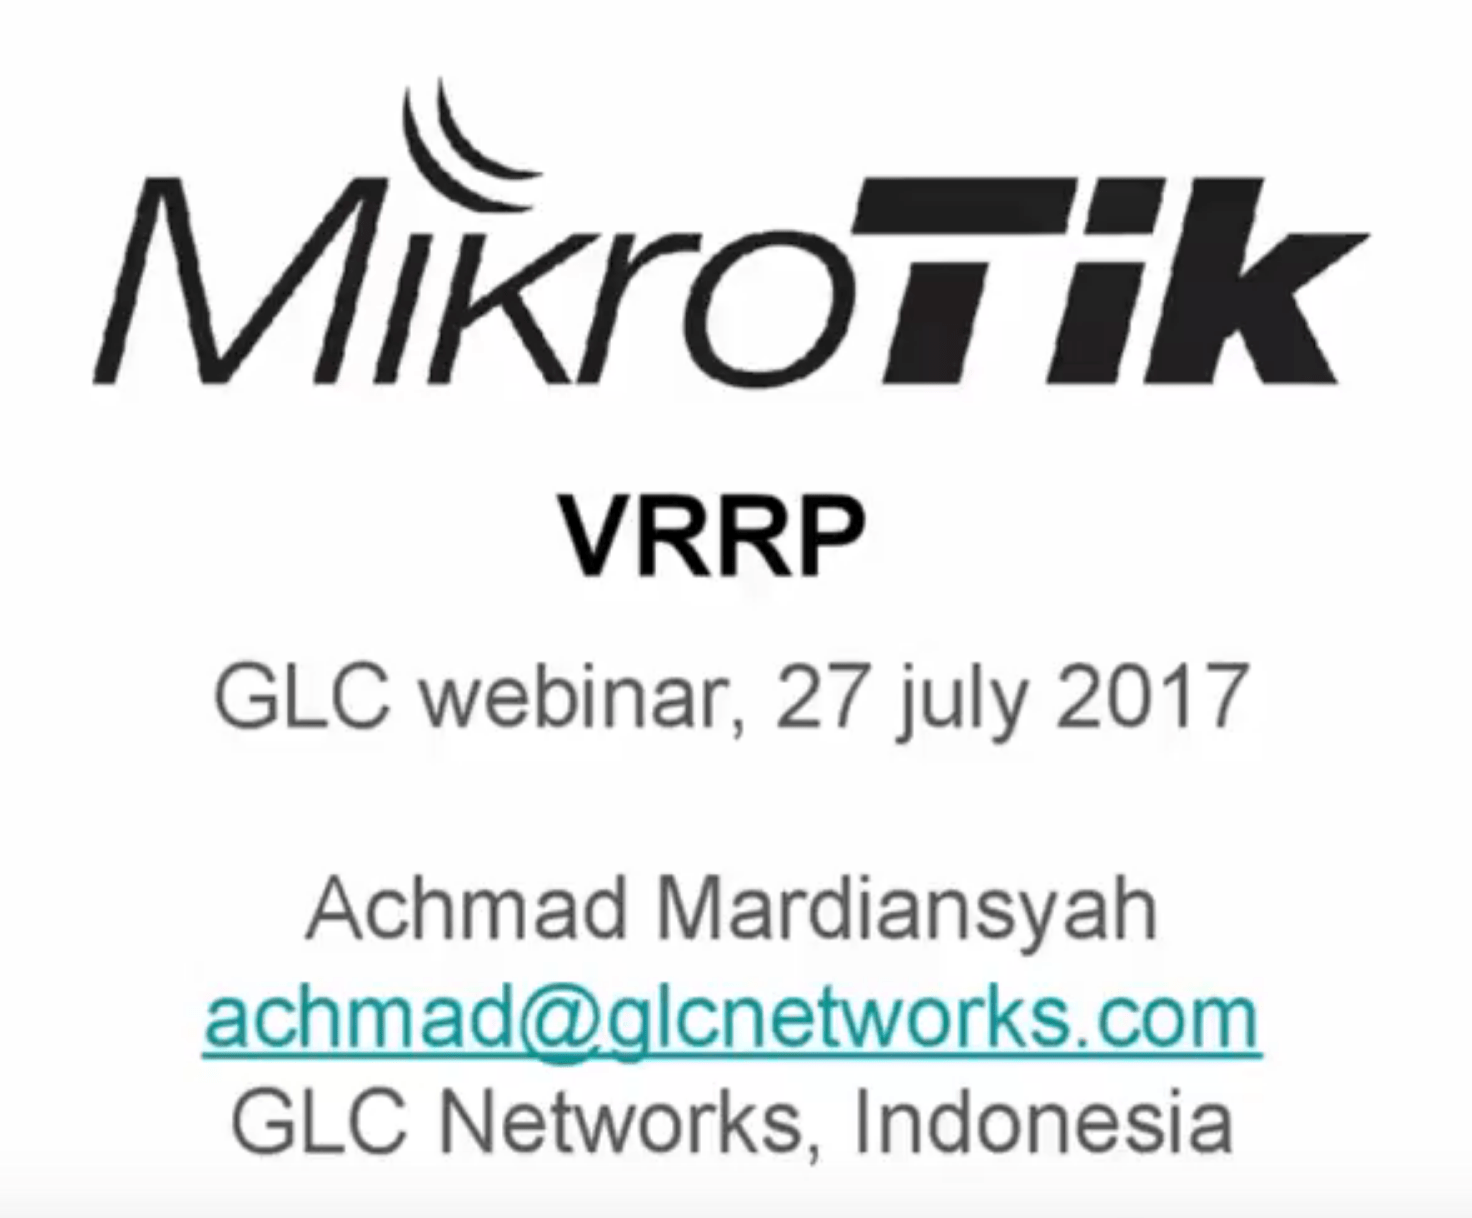 July 2017, GLC Webinar: VRRP on Mikrotik